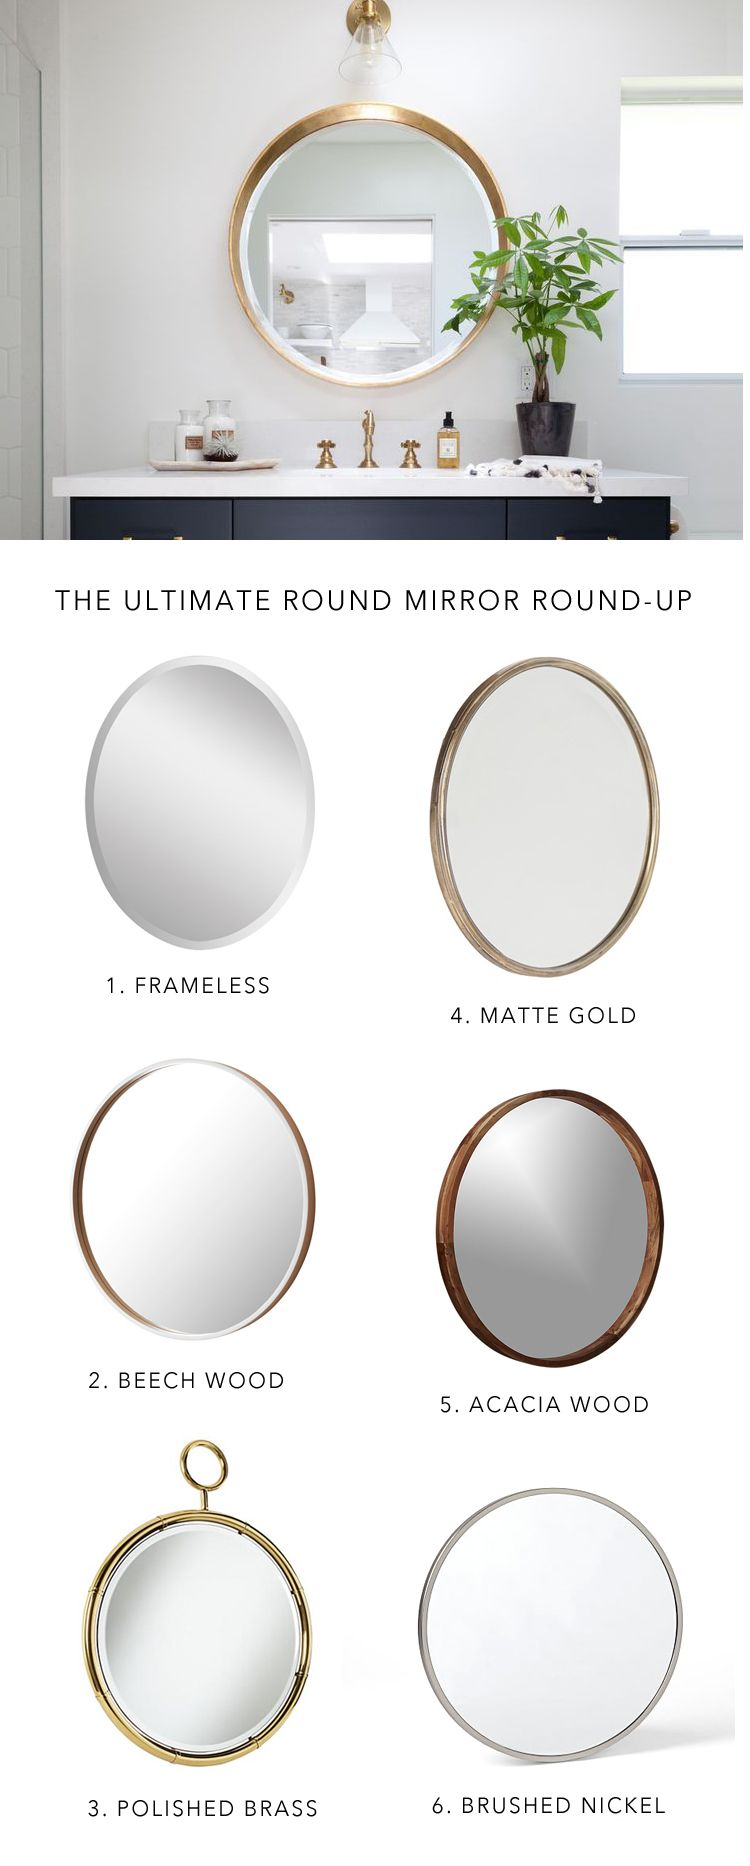 10 BEST: Round bathroom mirrors | Pinterest | Round bathroom mirror ...